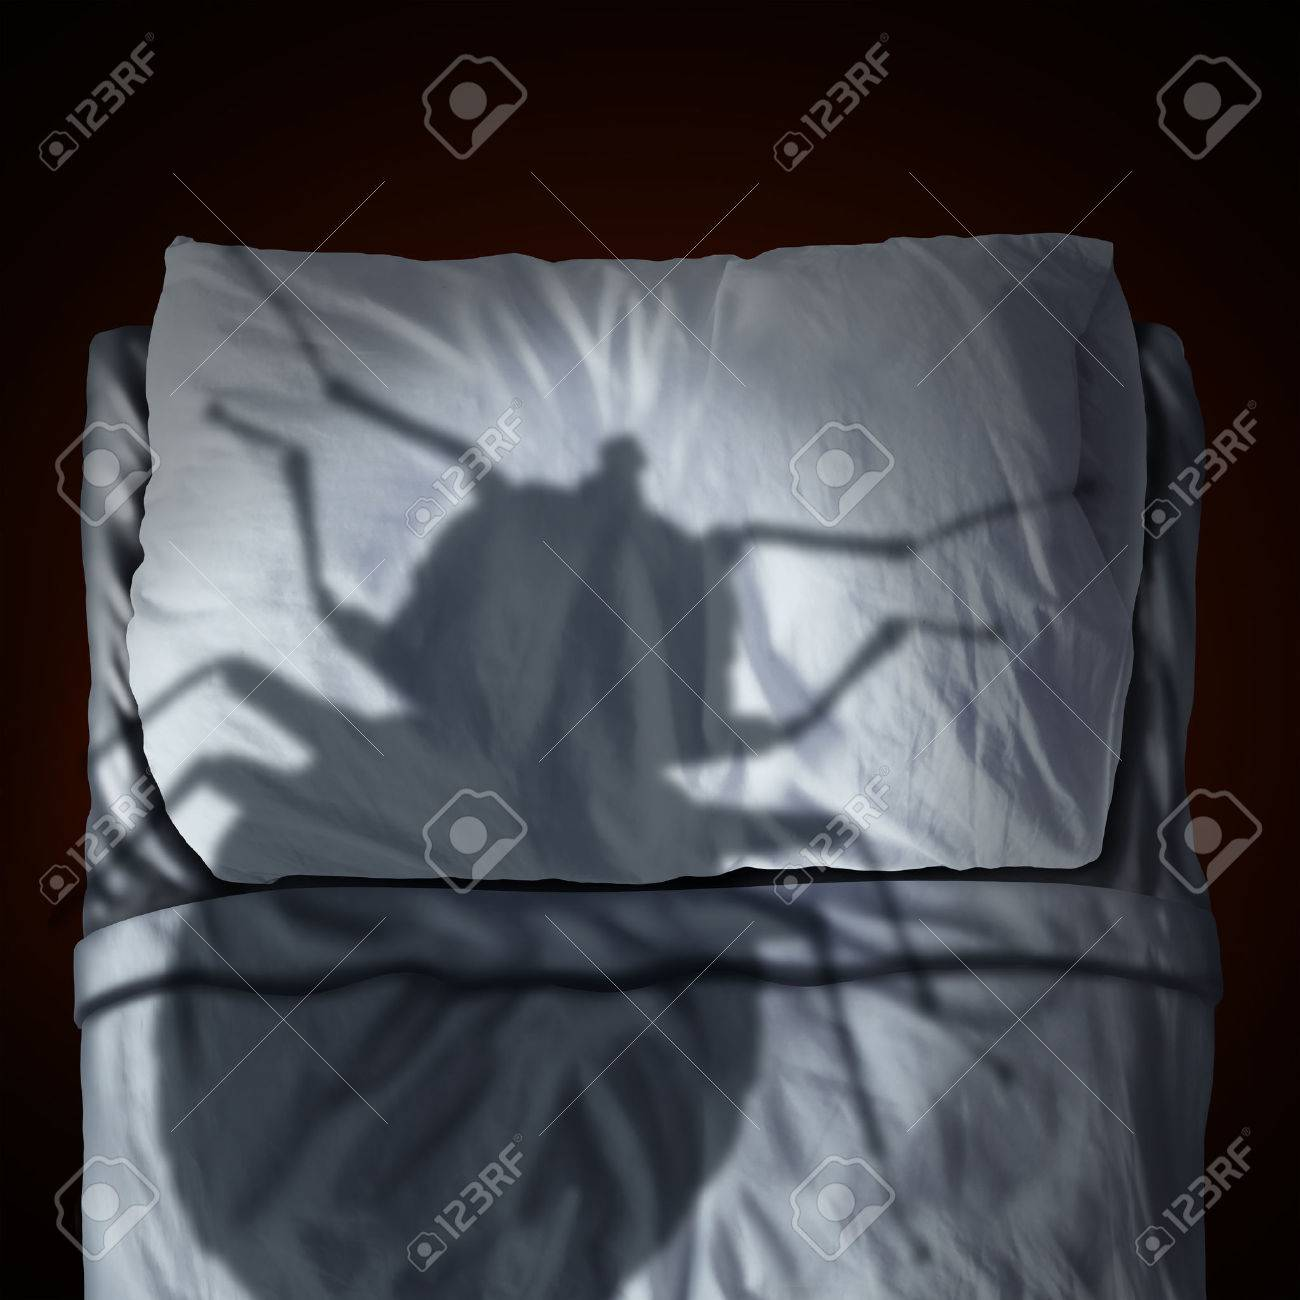 Bed bug fear or bedbug worry concept as a cast shadow of a a parasitic insect pest resting on a pillow and sheets as a symbol and metaphor for the anxiety horror and danger of a bloodsucking parasite living inside your mattress. Stock Photo - 54180975